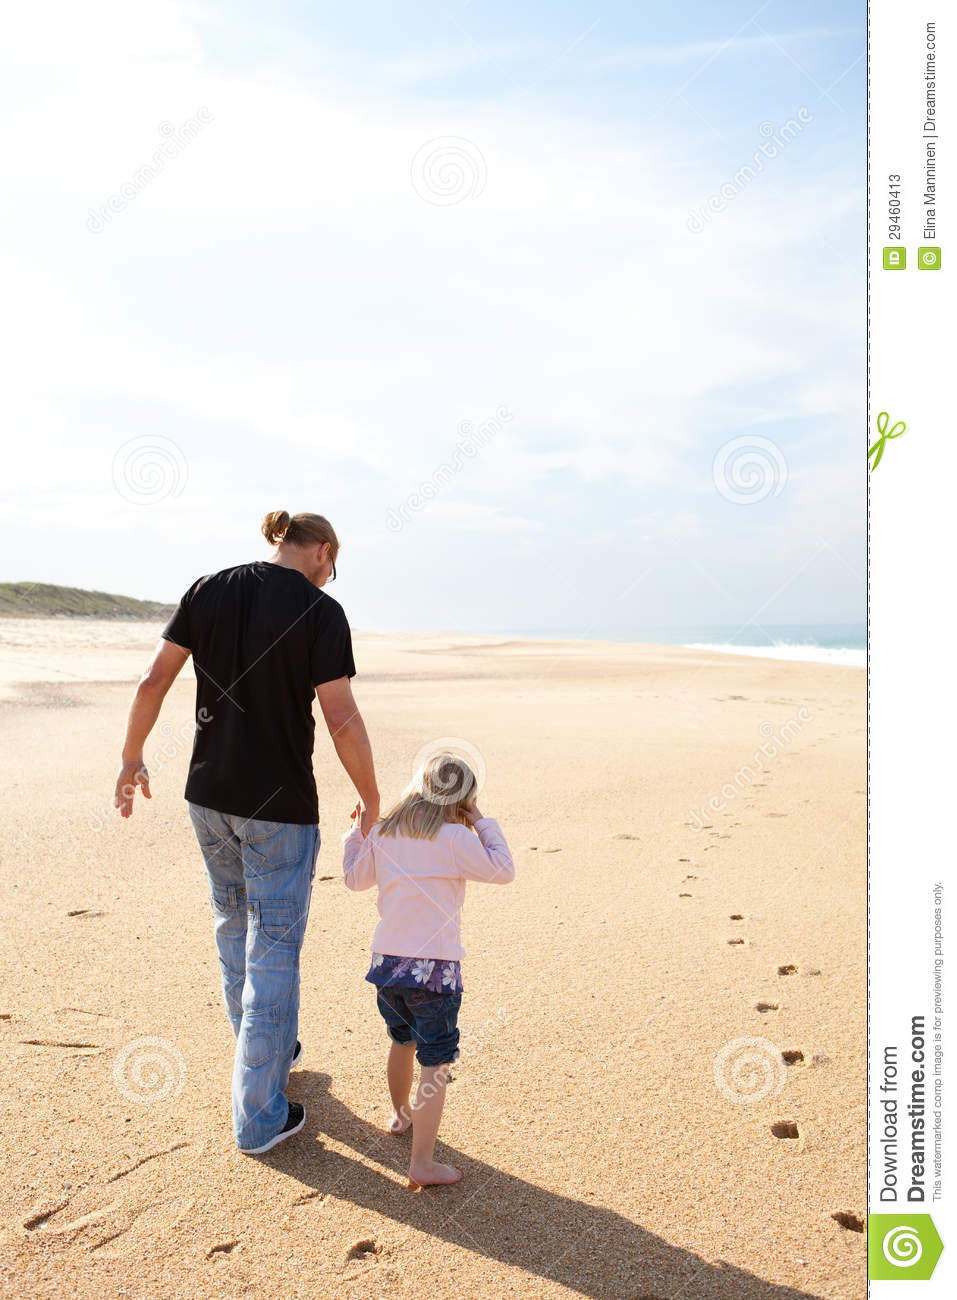 Interesting Dad with daughter walking advise